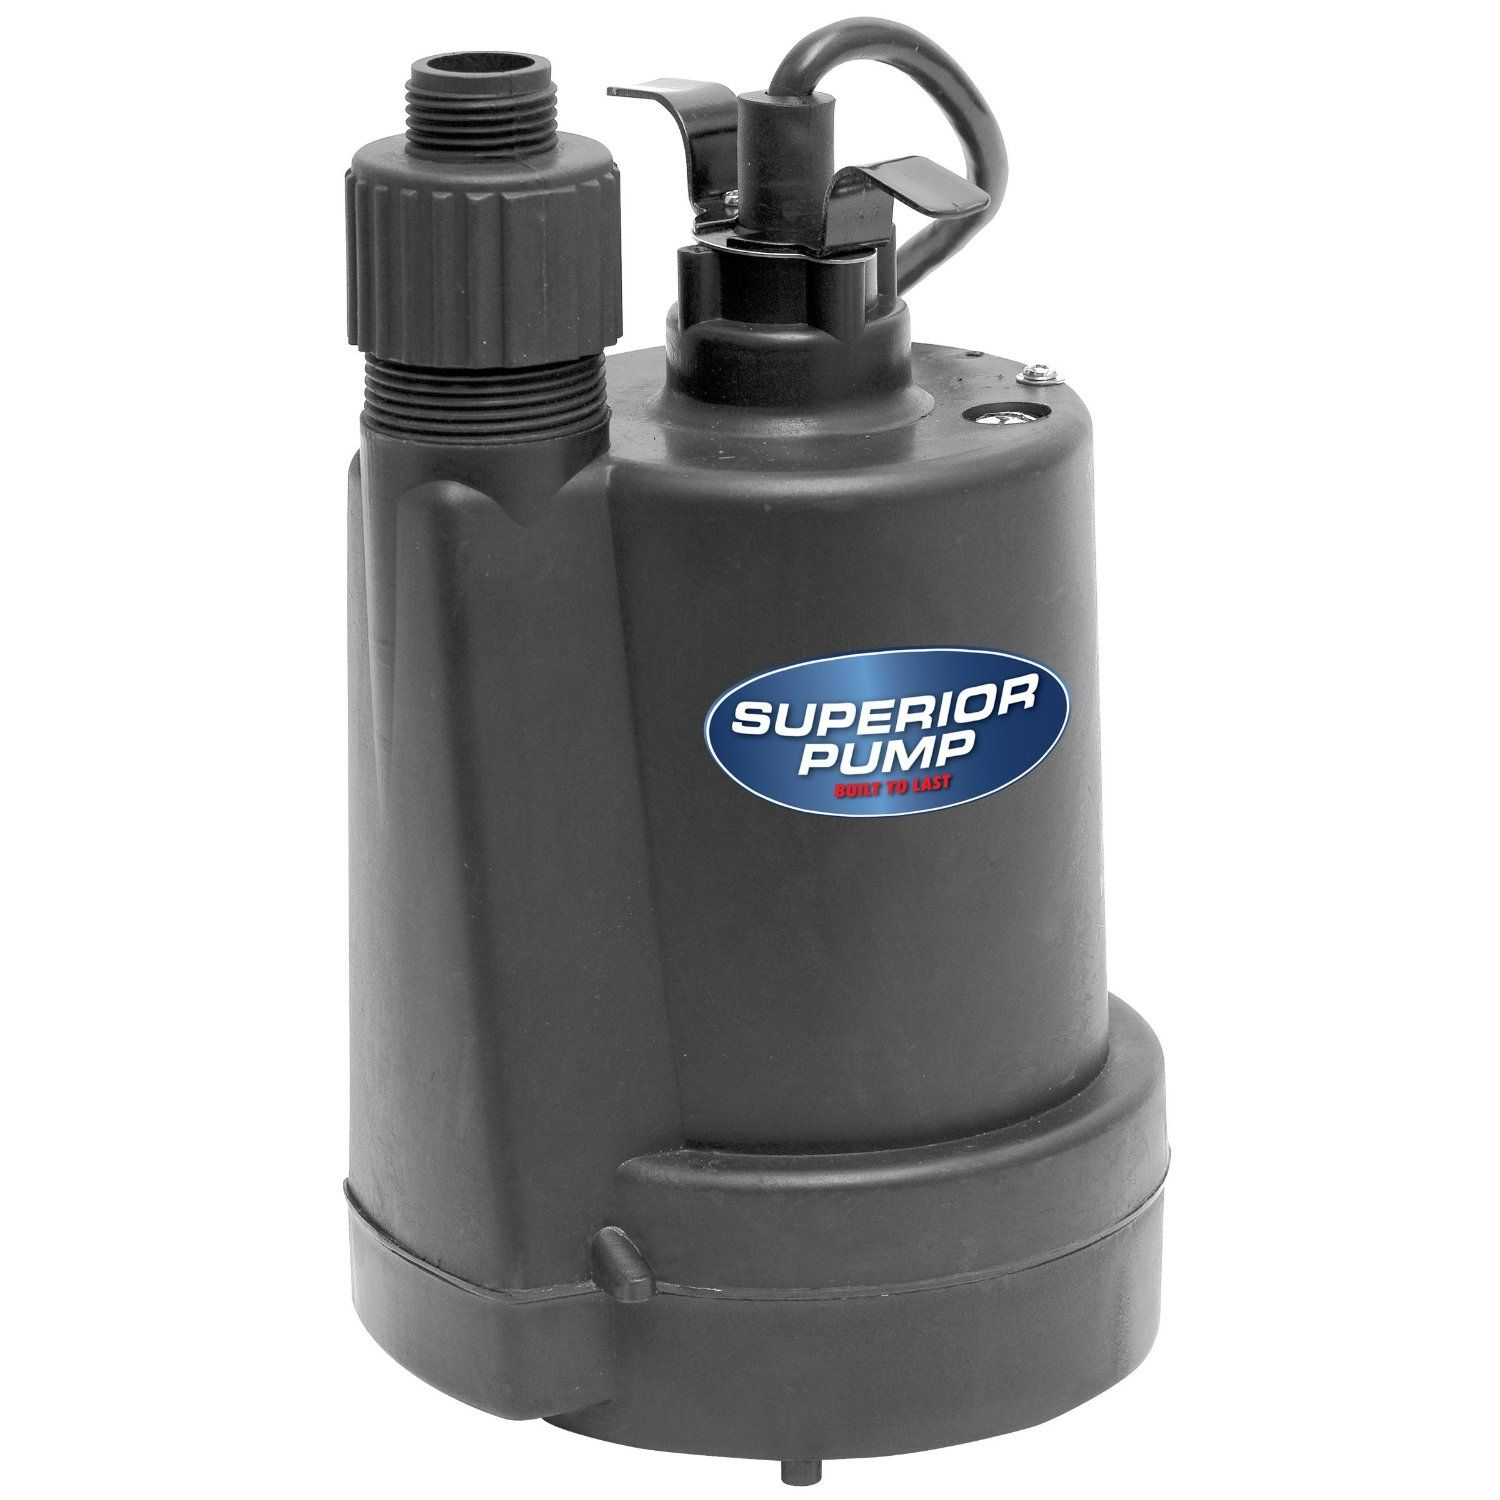 Superior Pump 91250 1 4 Hp Thermoplastic Submersible Utility Pump Sump Pumps Amazon Com Submersible Utility Pump Submersible Pump Pumps